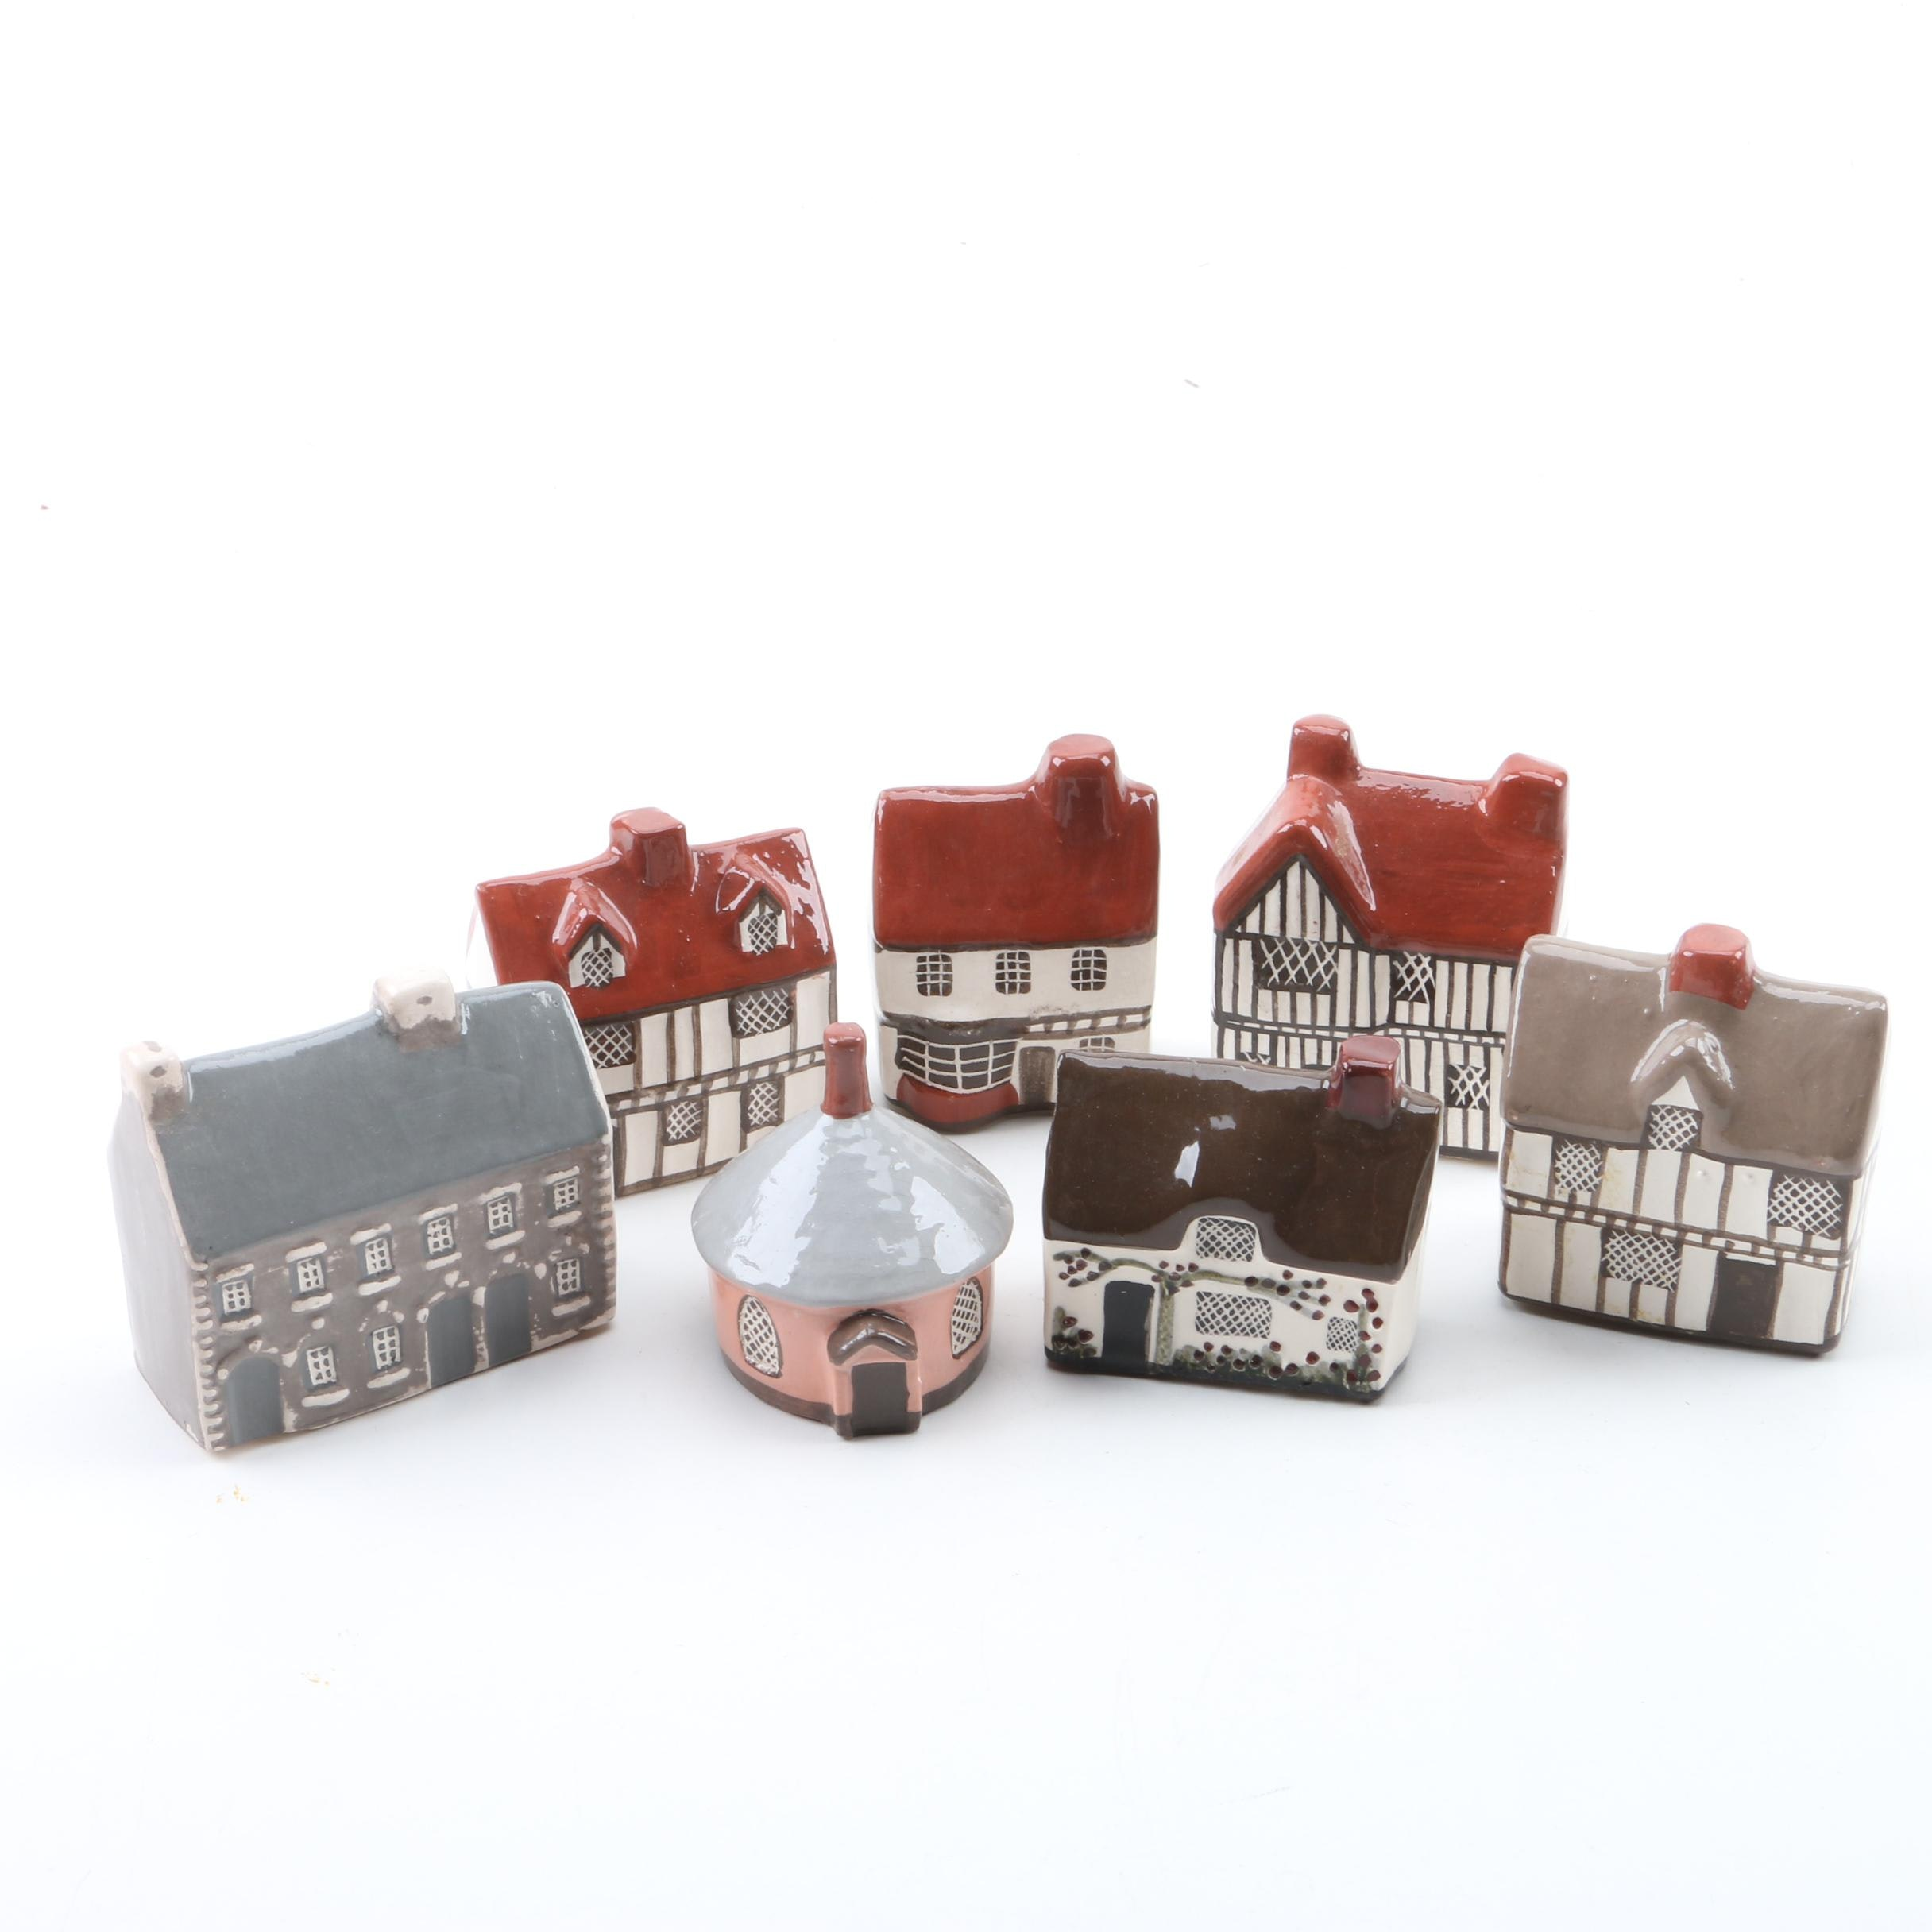 Hand Painted Ceramic English Building Figures